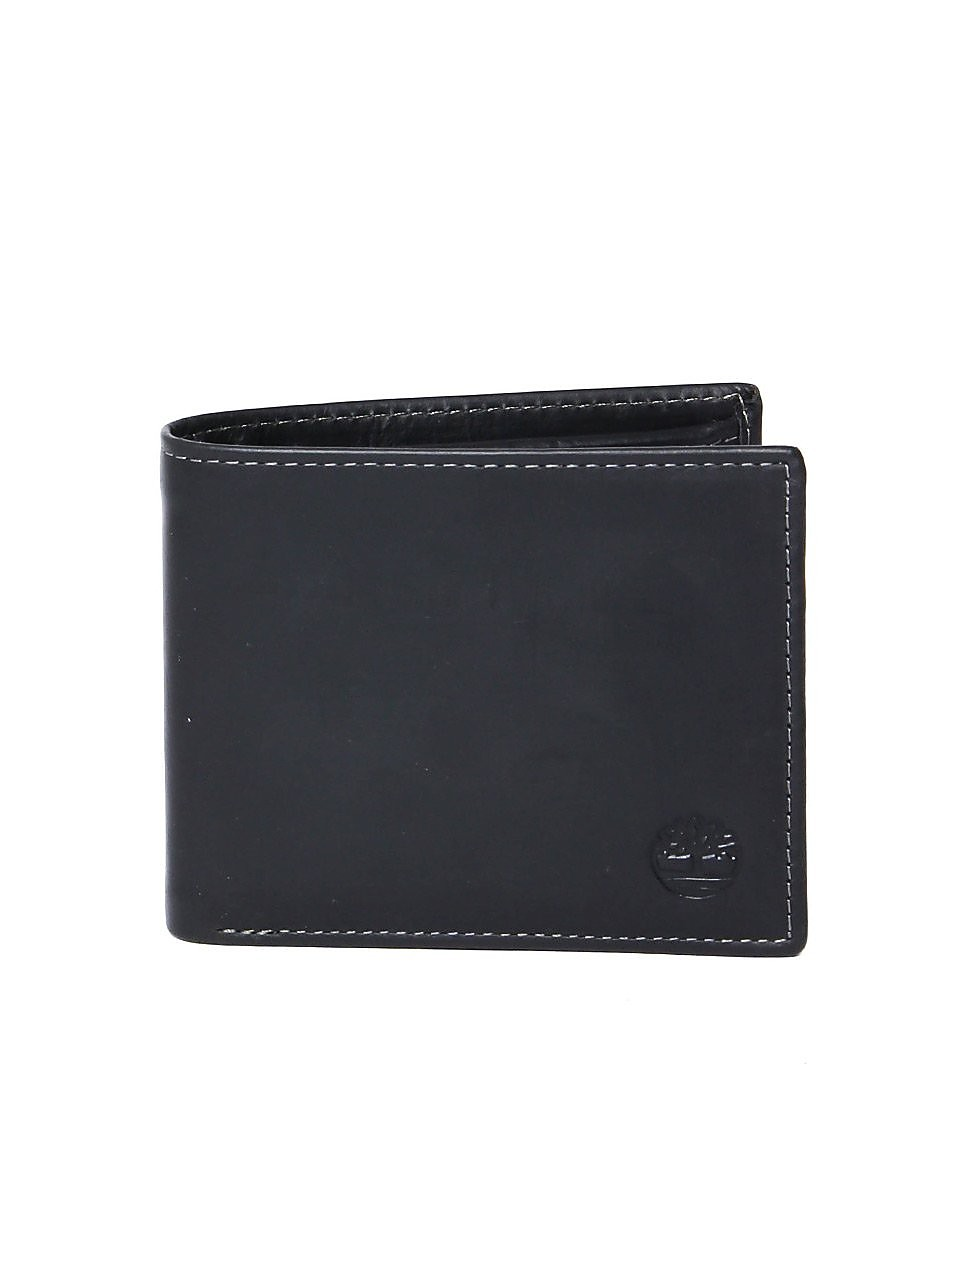 Timberland Men's ODD Billfold Wallet - Black Leather